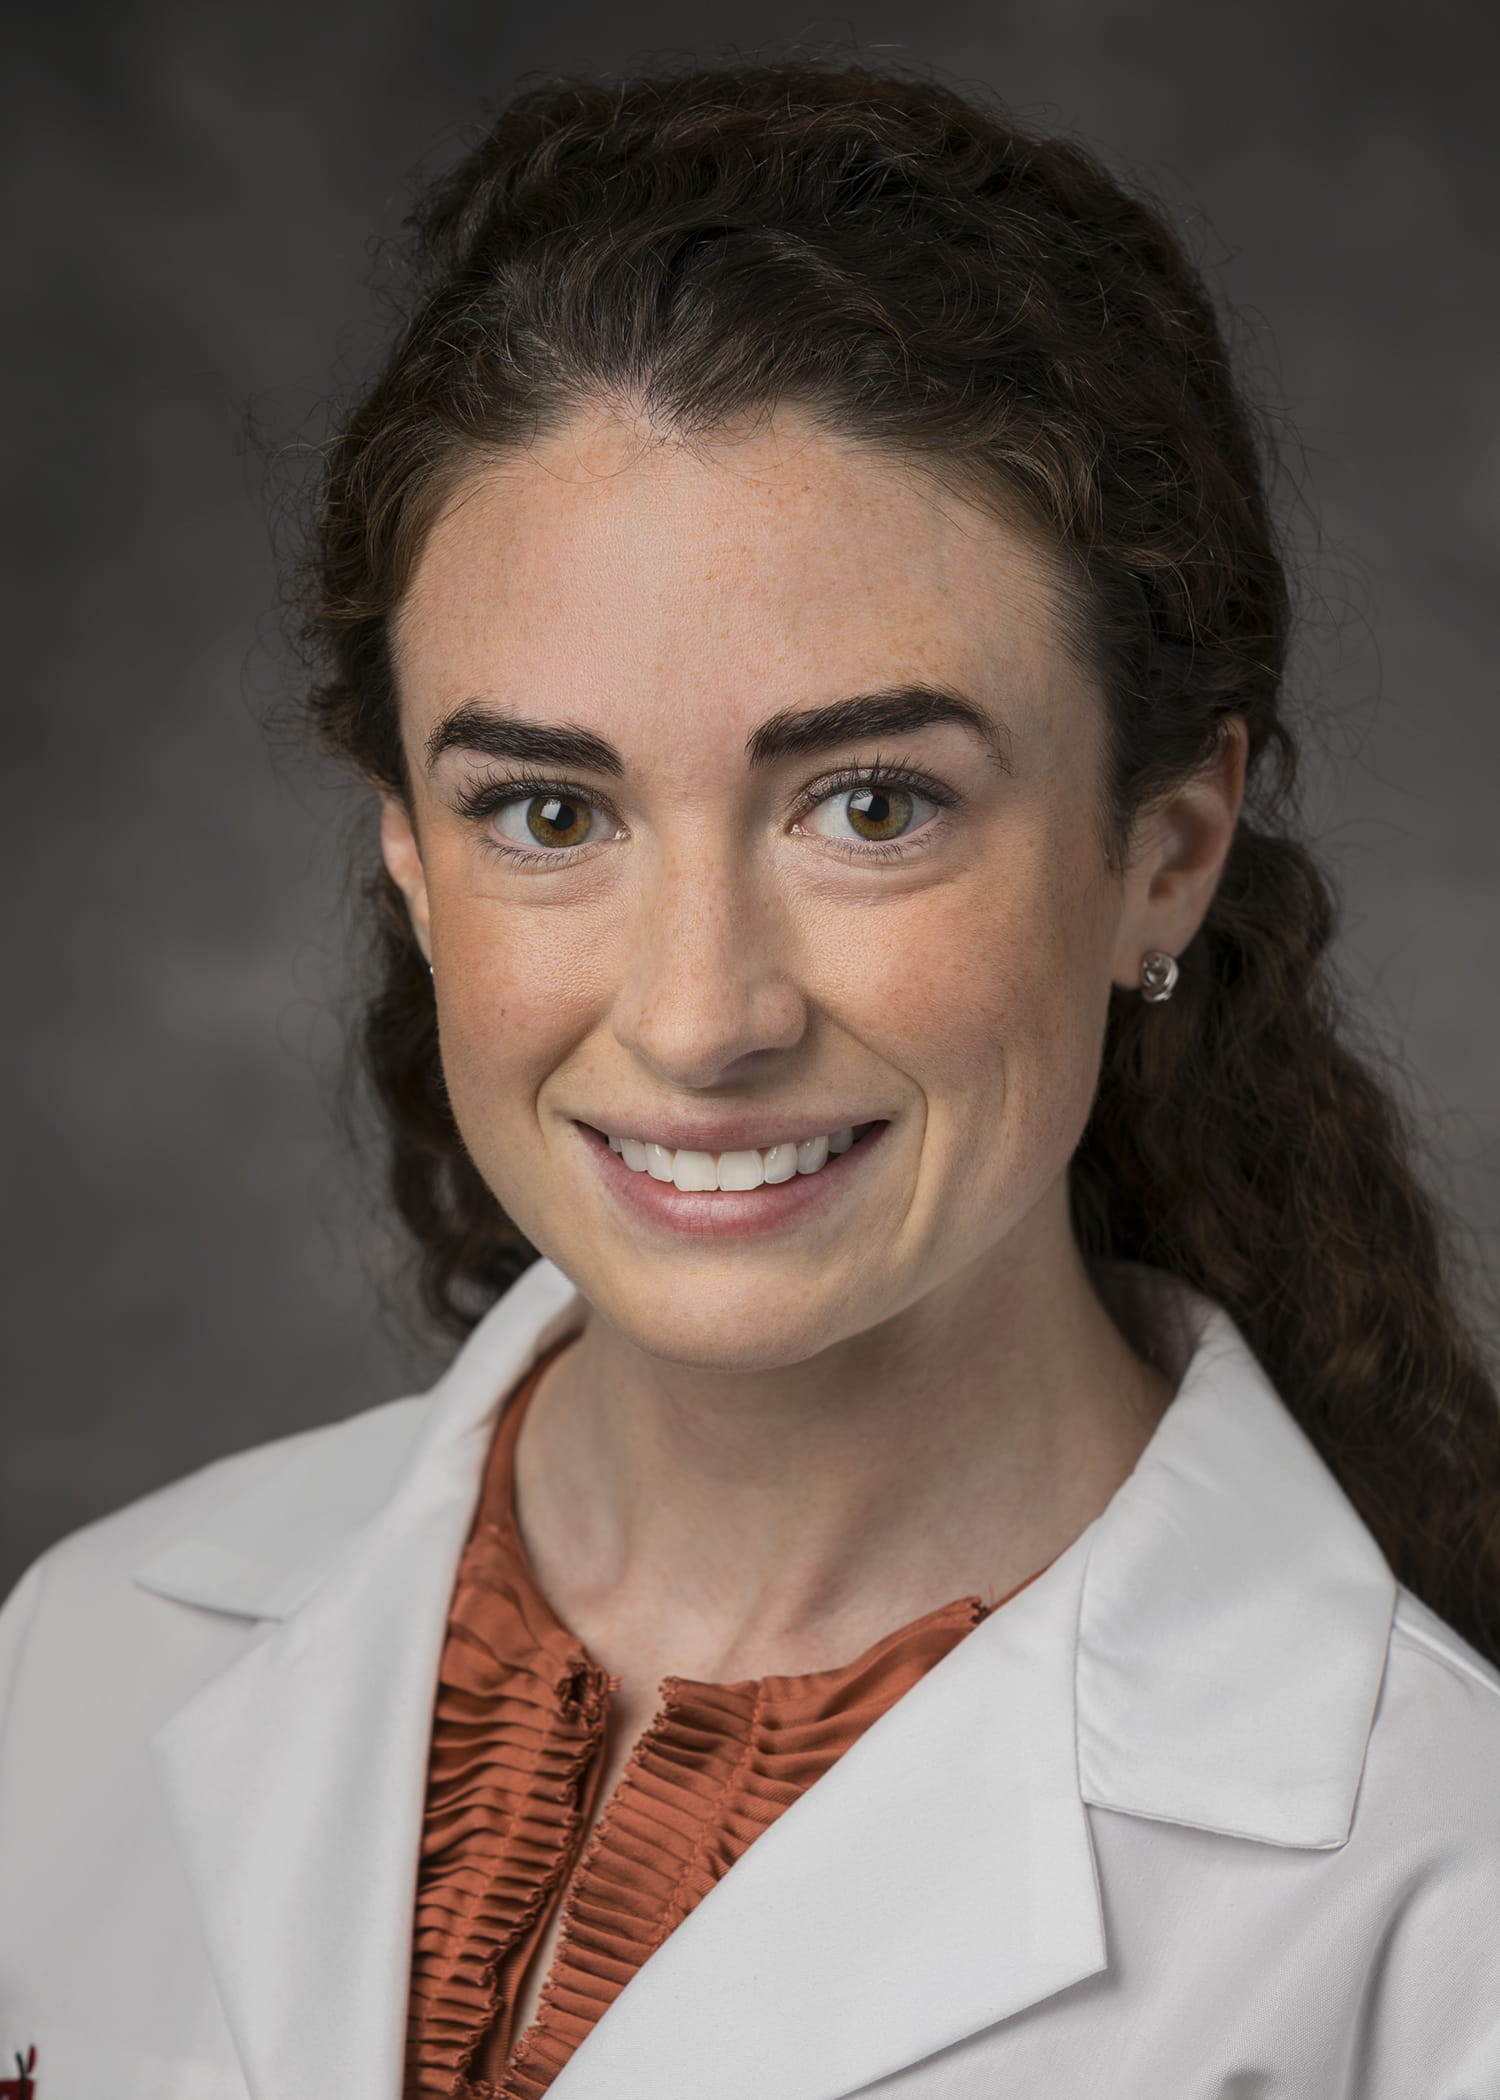 Amy Schell, MD